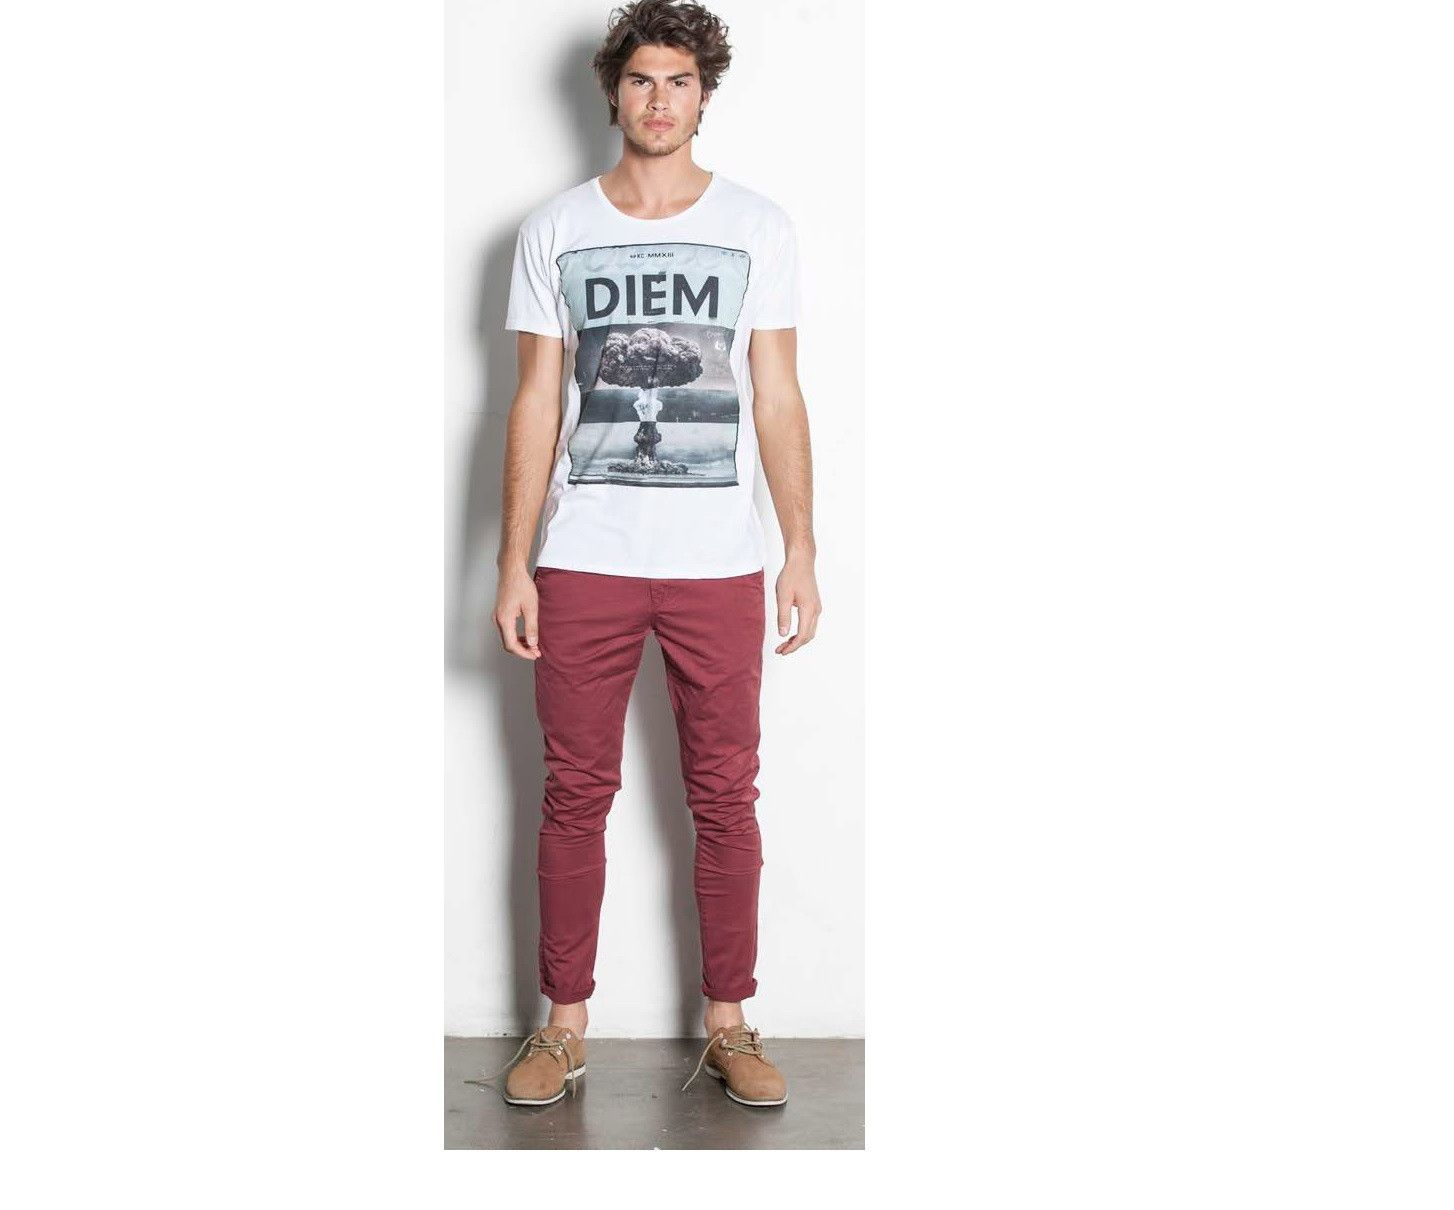 4fd4c489d91 Kiss Chacey Diem Tee find it and other fashion trends. Online shopping for Kiss  Chacey clothing.